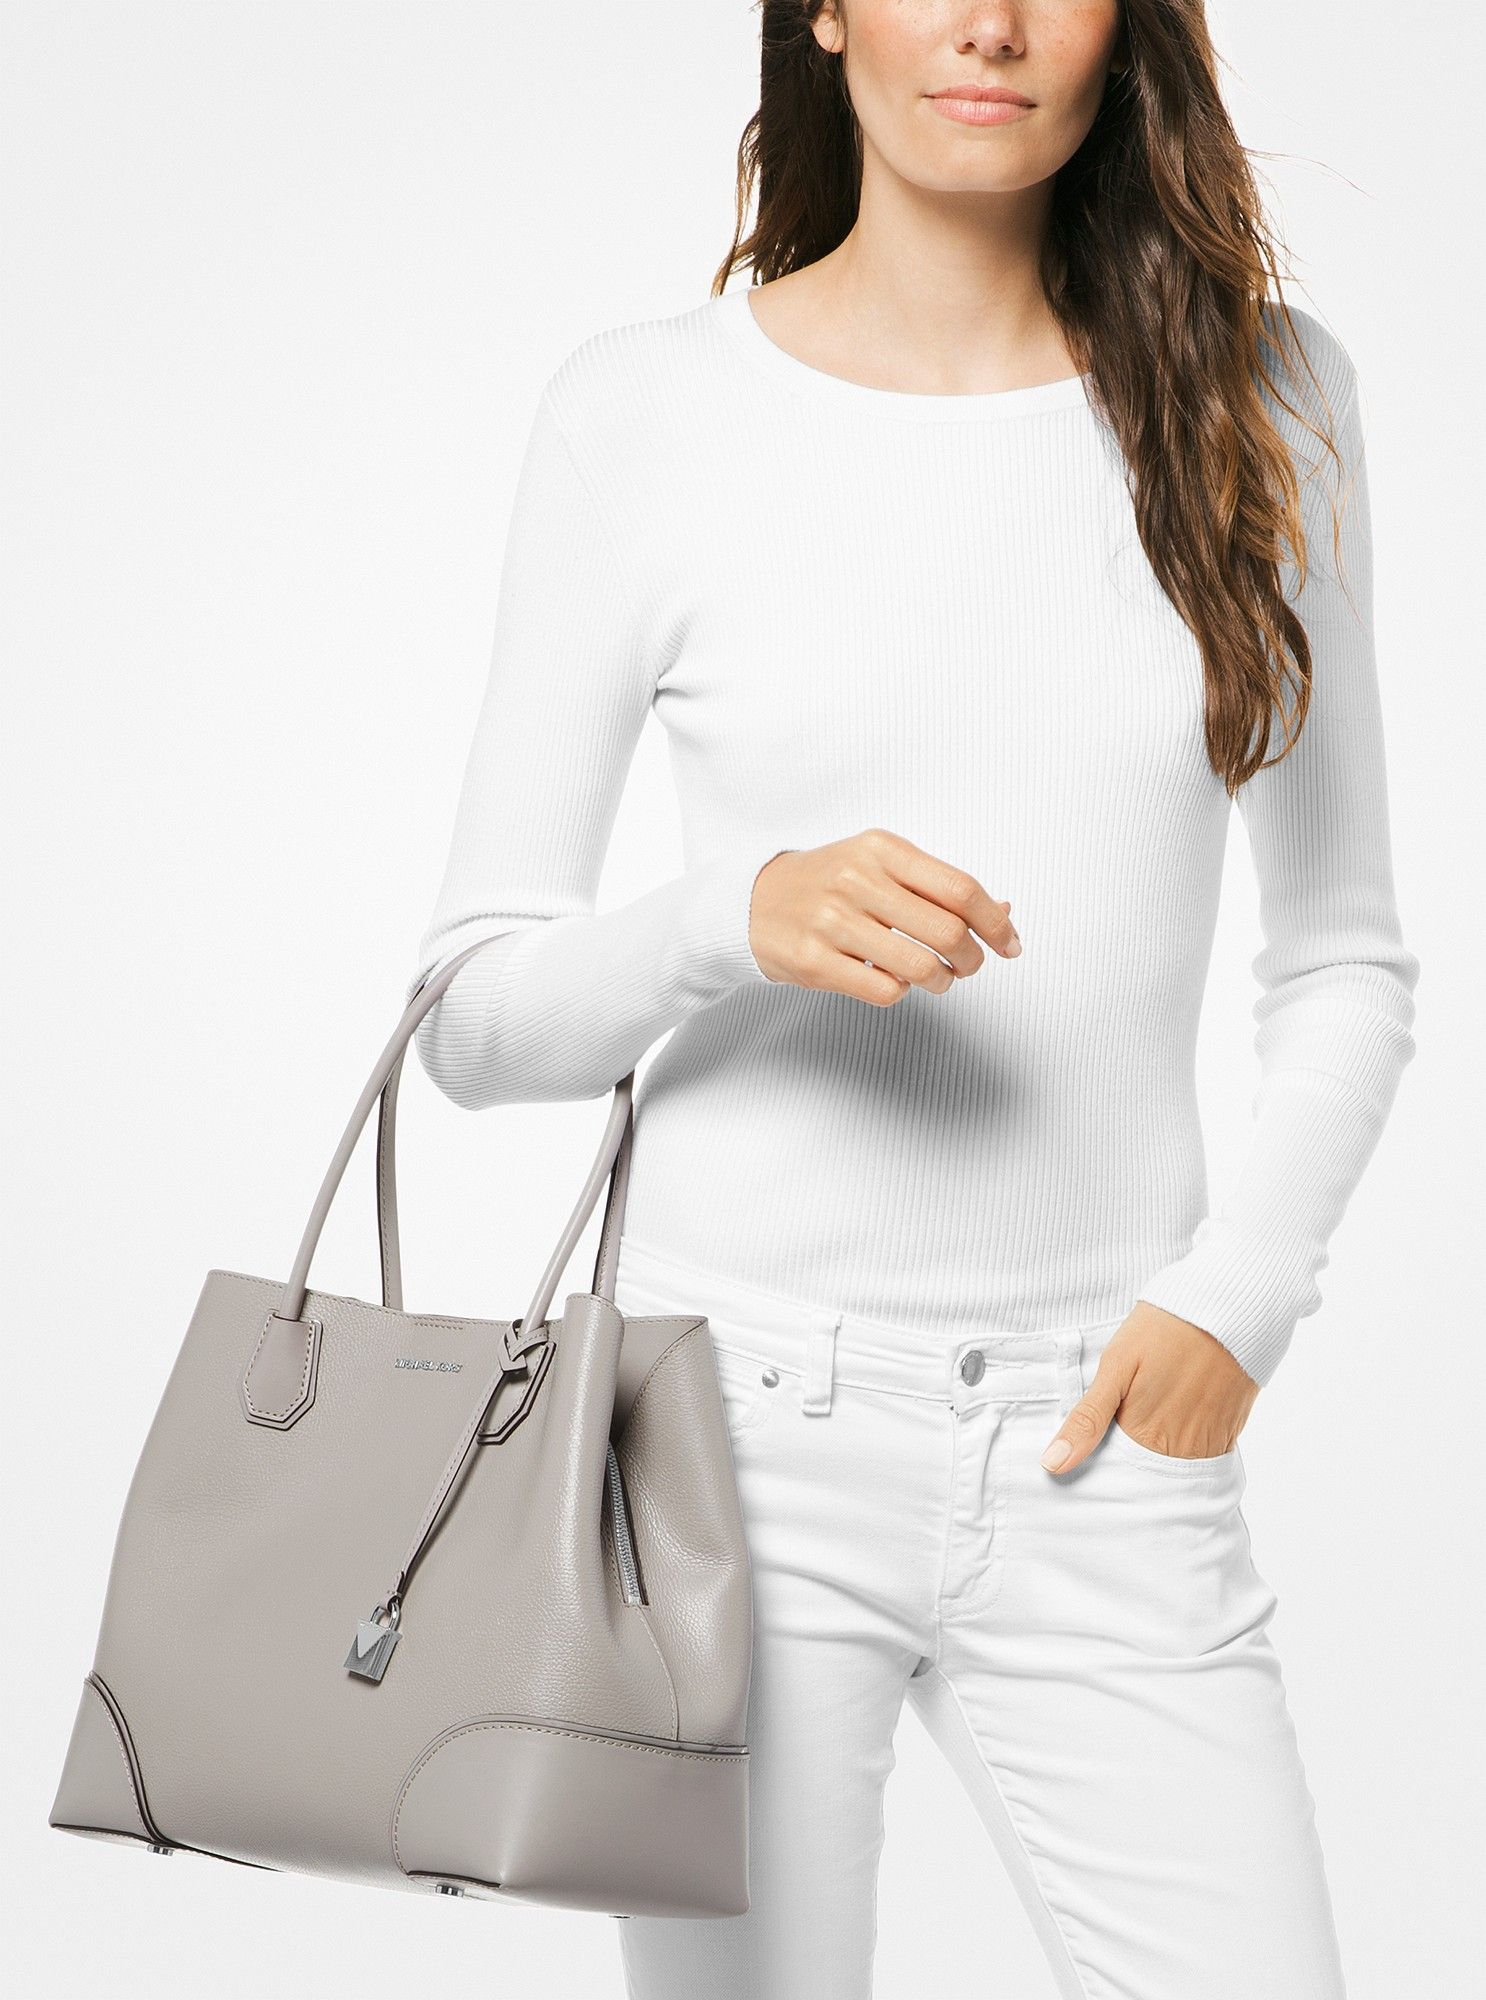 7065f9dcca11 Michael Kors Mercer Gallery Large Pebbled Leather Satchel - Pearl Grey